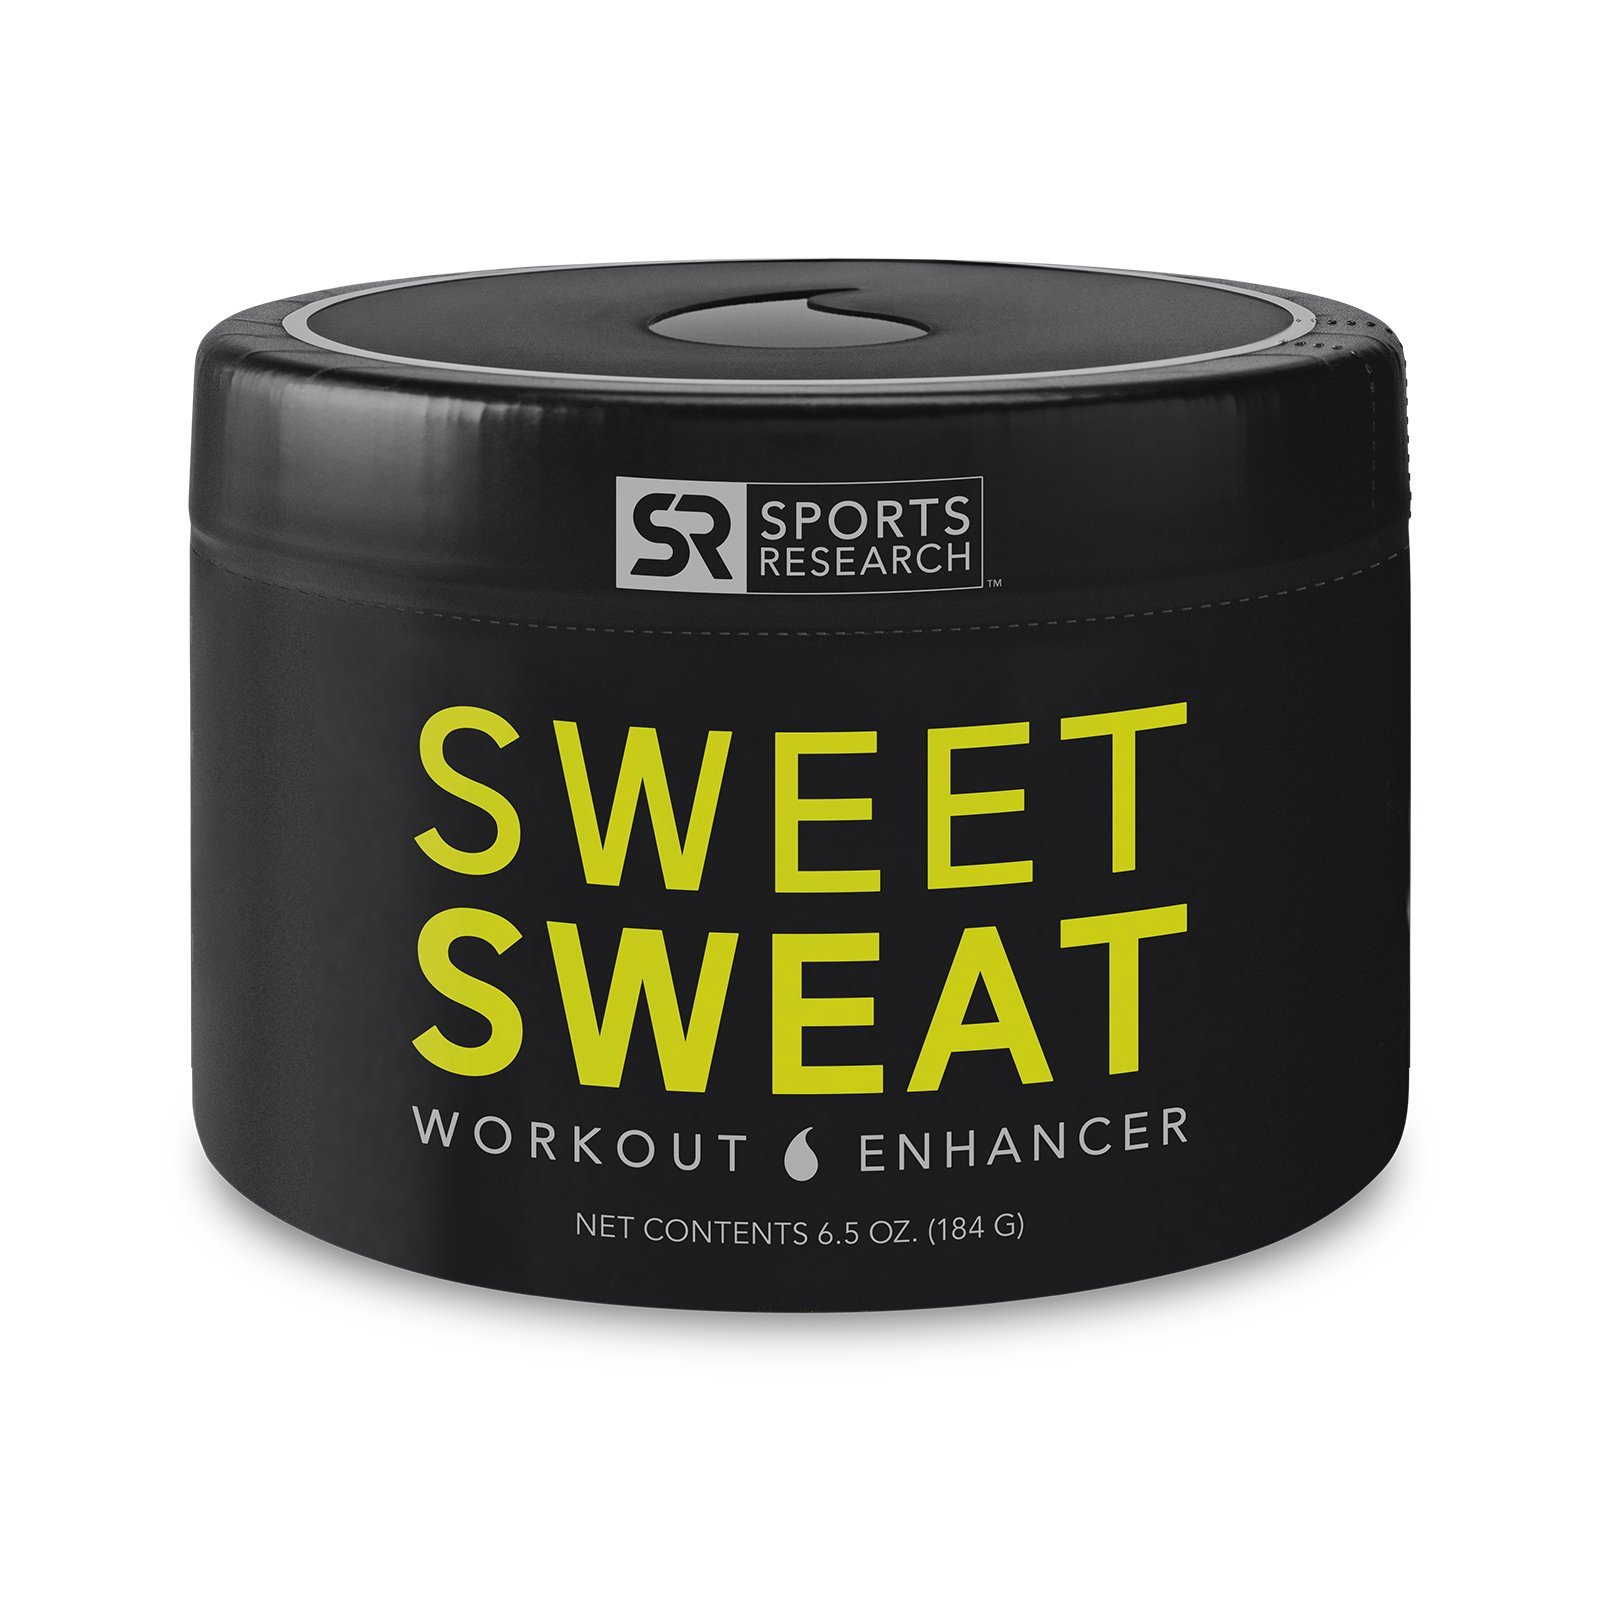 Sports Research Sweet Sweat Jar, 6.5-Ounce by Sports Research